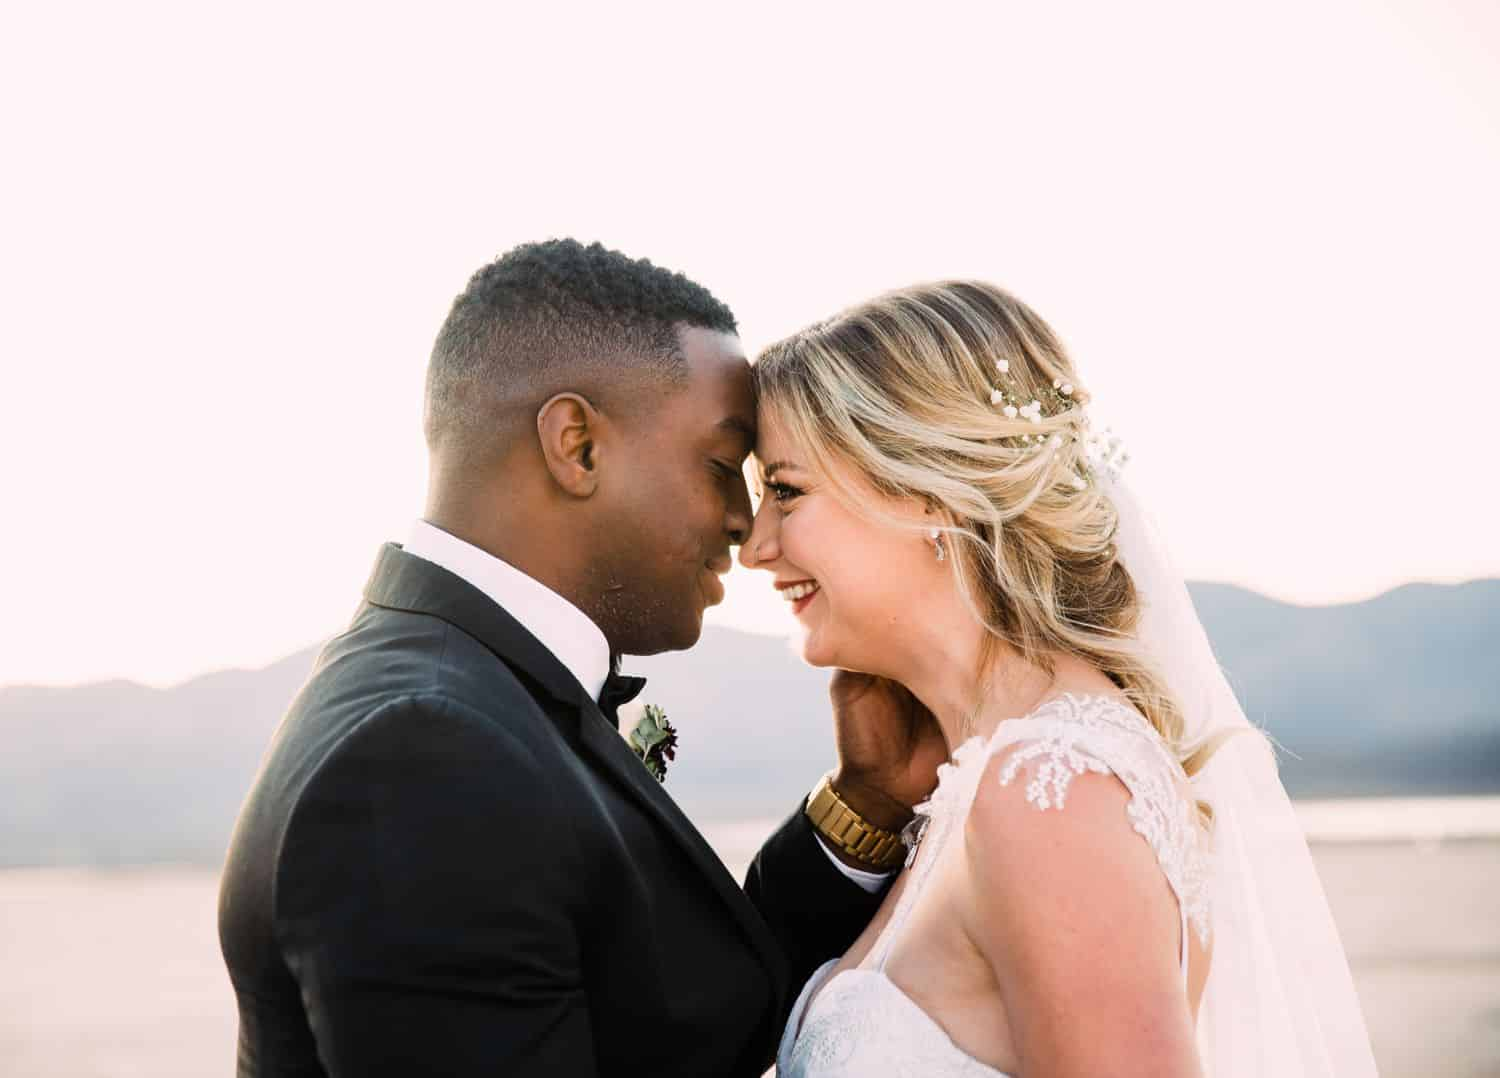 A bride and groom pose nose-to-nose while smiling for portraits after their desert wedding